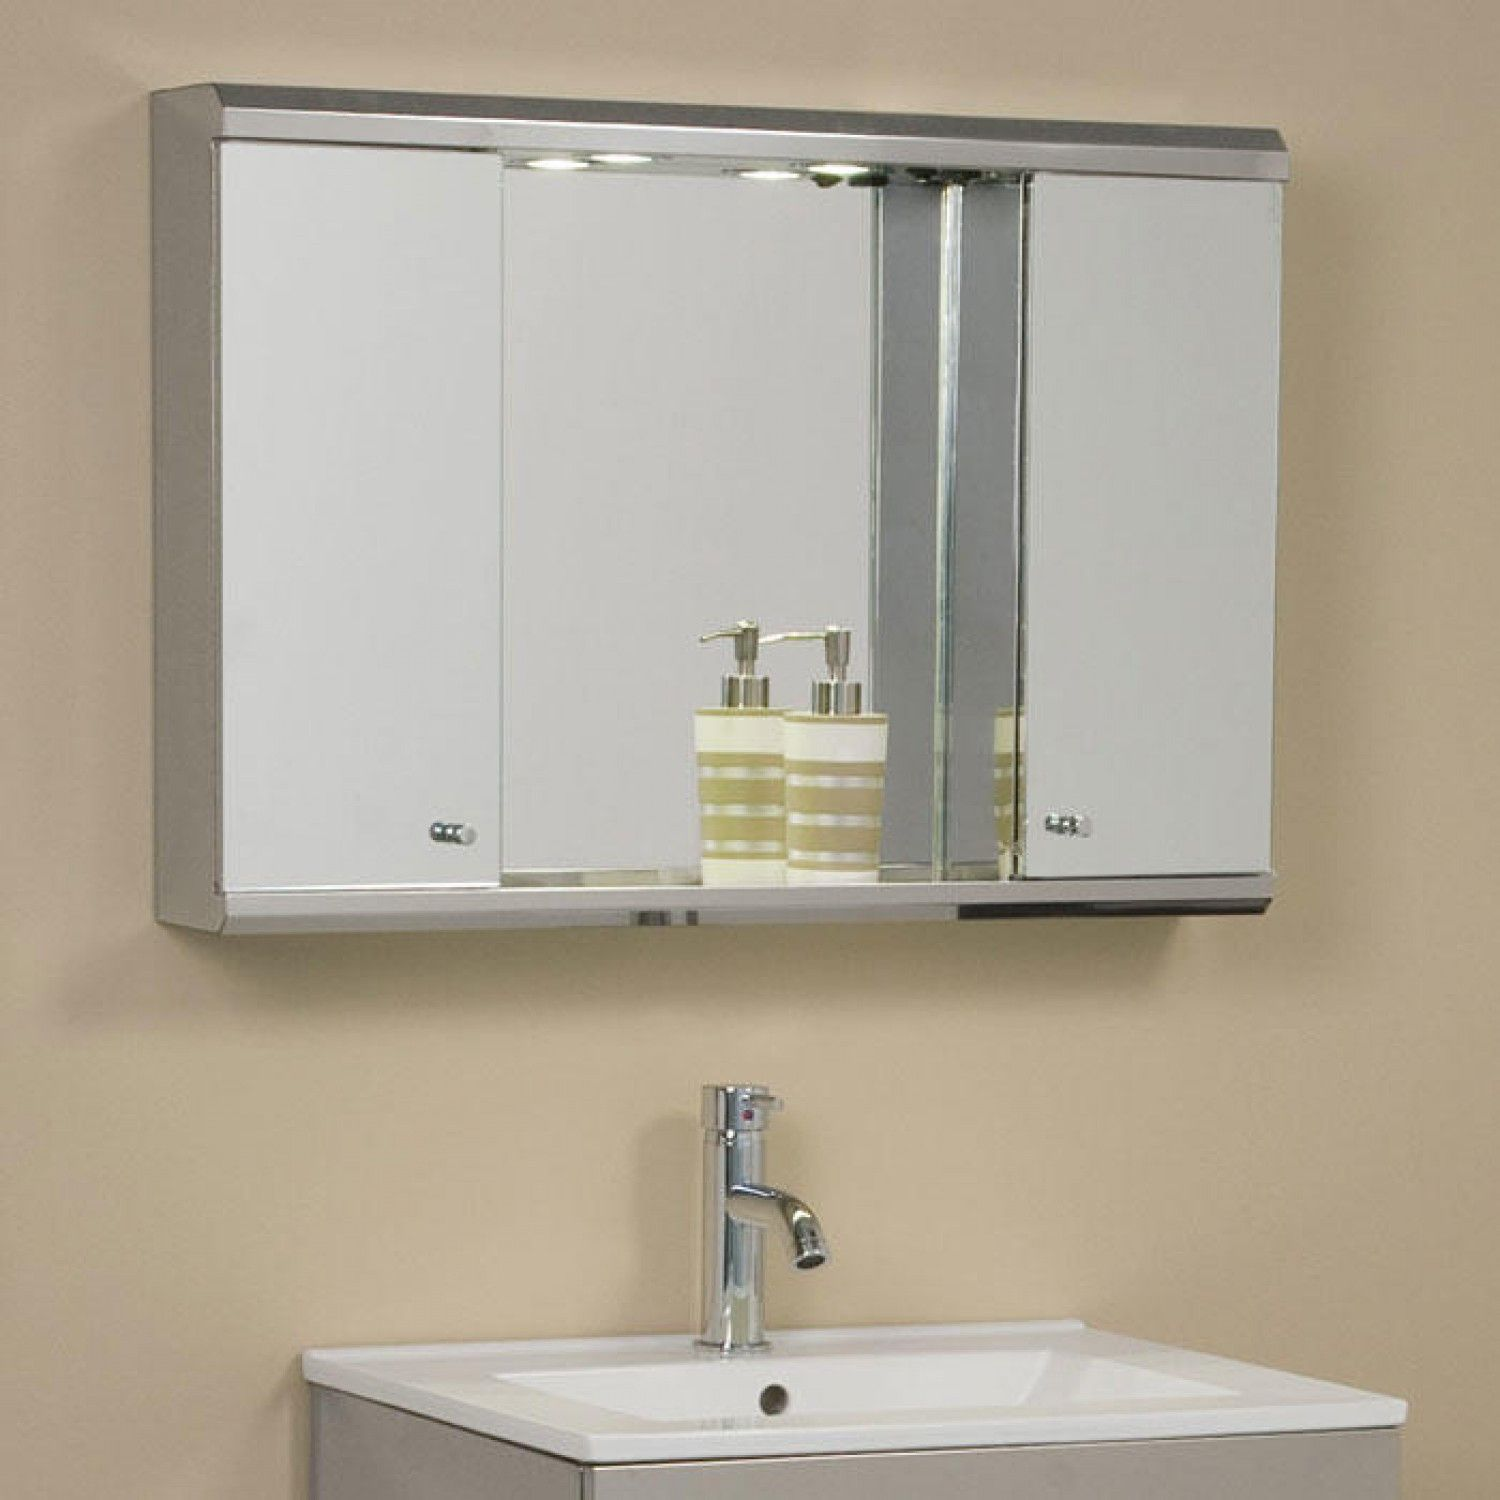 77 Cabinet with Mirror for Bathroom Kitchen Counter top Ideas